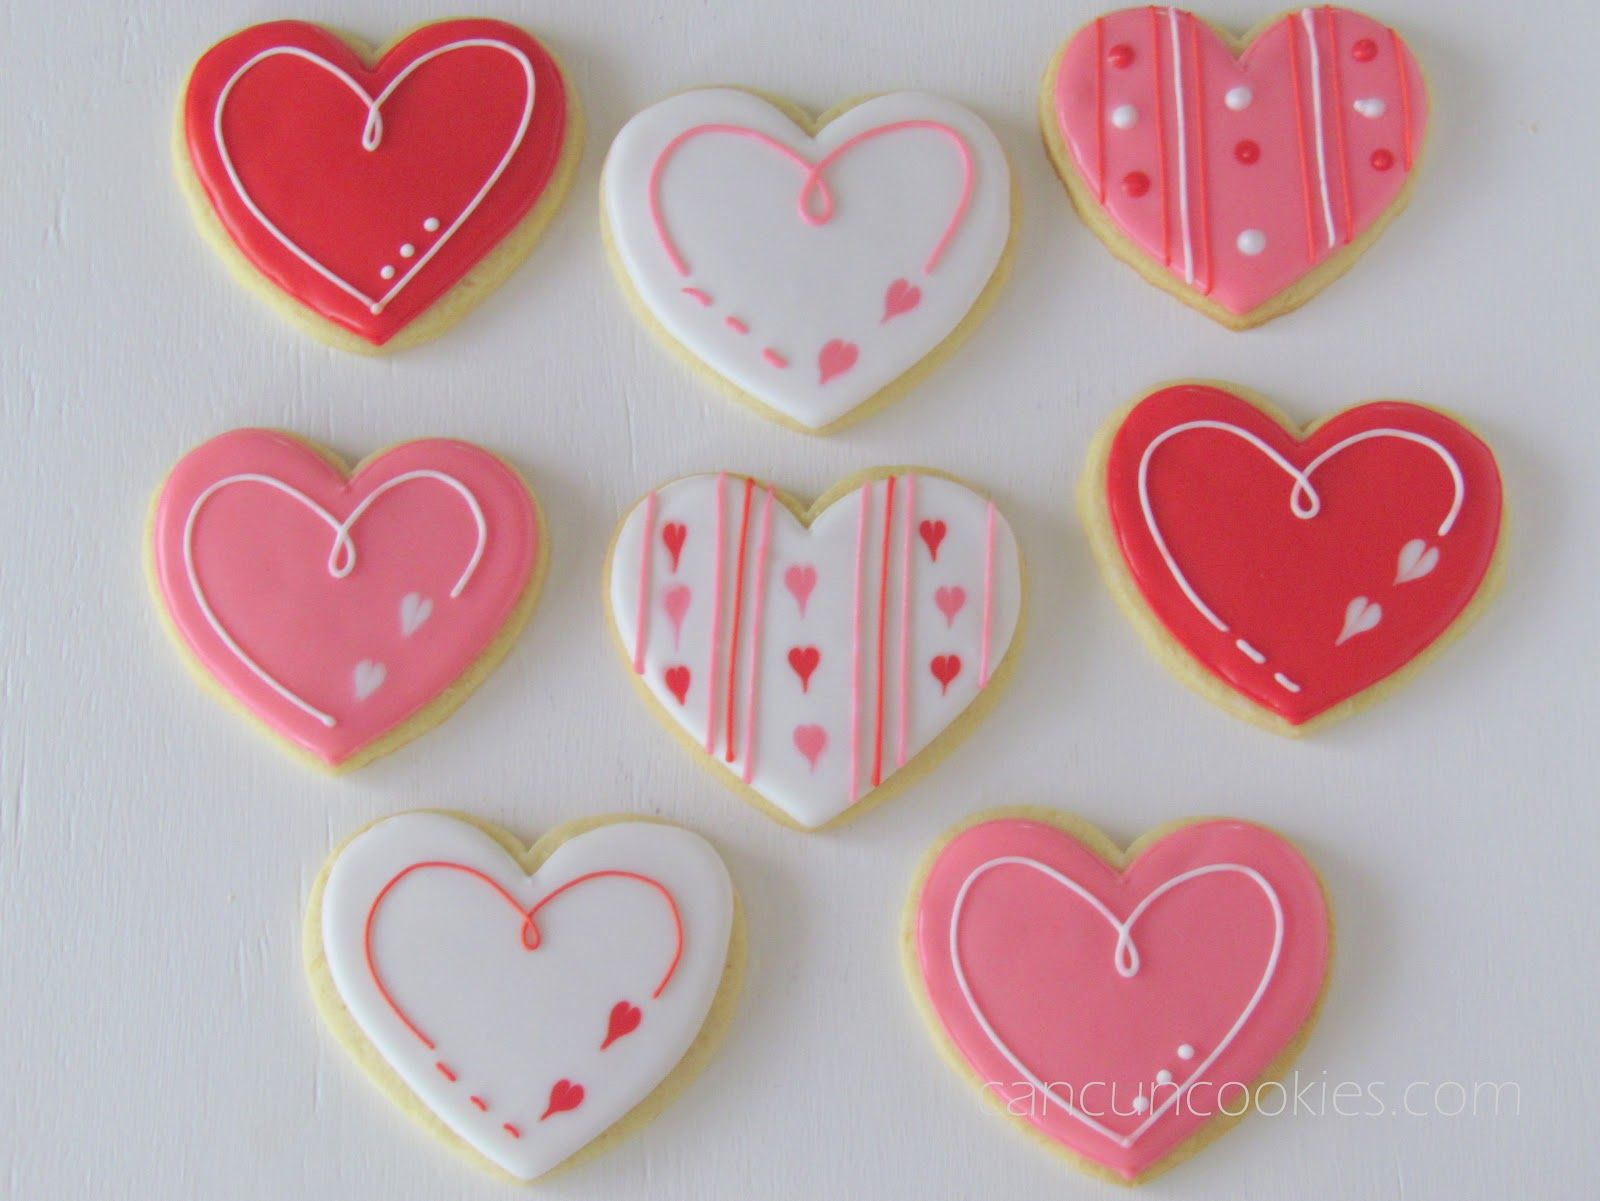 Get inspired with Wilton's large collection of cookie decorating ideas online! Find cookie ideas with online instructions for decorating extraordinary cookies. Item(s) added to the shopping cart! Heart in Bloom Giant Cookie Compare. Quickview. Graduation Cap Cookies Compare. Quickview. Graduation Cookie Sandwich Pops Compare.